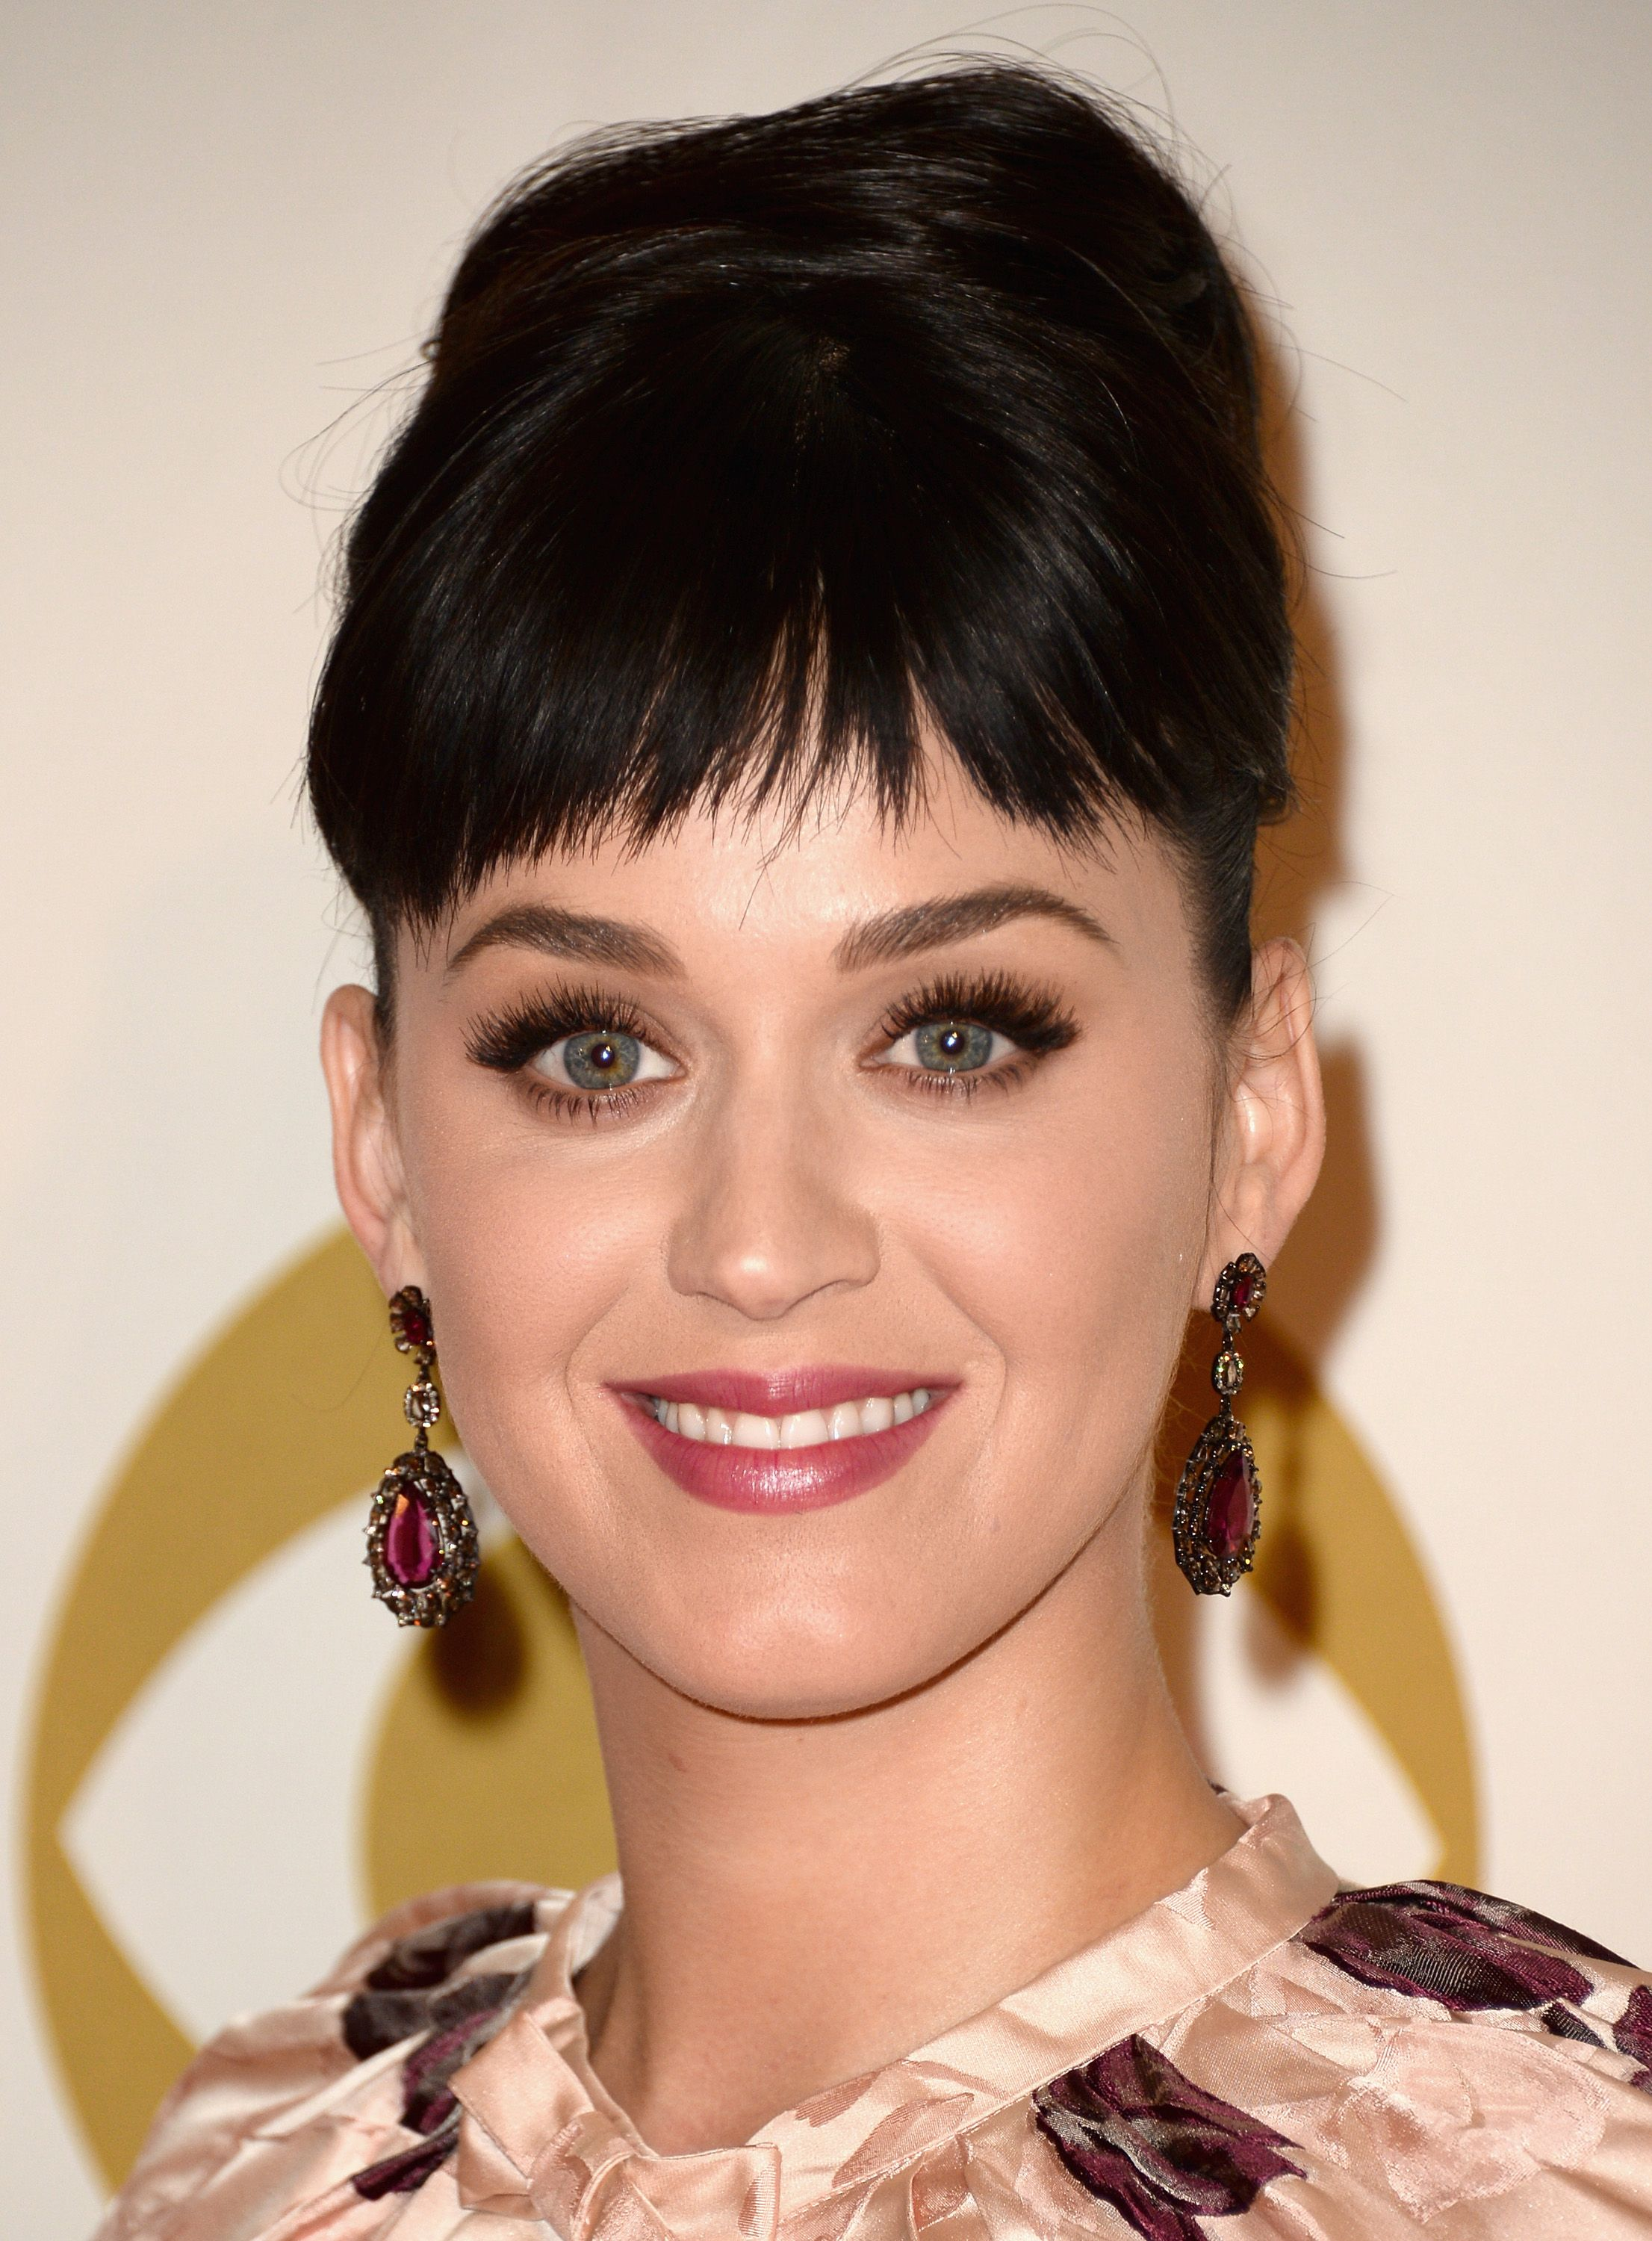 35 Best Hairstyles With Bangs , Photos of Celebrity Haircuts